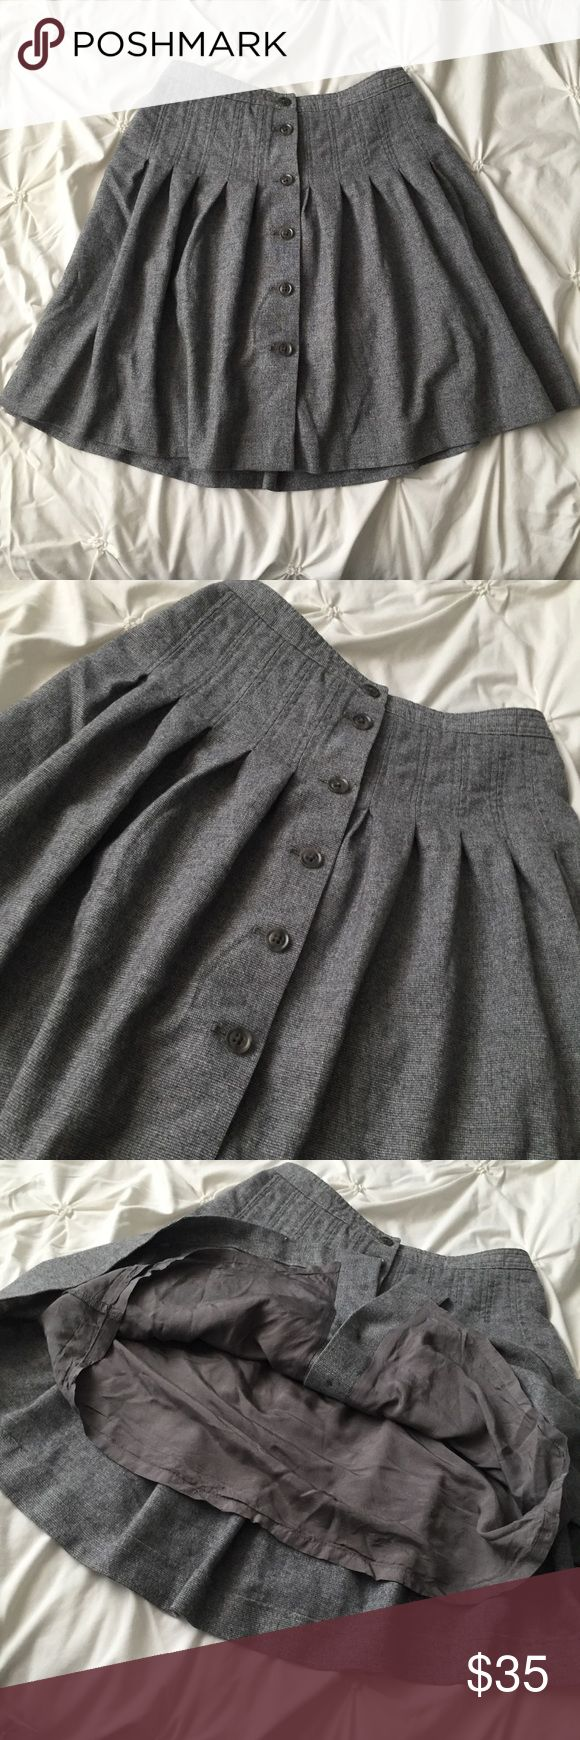 GAP Gray Pleated Wool Blend Button Skirt GAP Gray Pleated Wool Blend Button Skirt size 4 Stretch  ----- 🚭 All items are from a non-smoking home. 👆🏻Item is as described, feel free to ask questions. 📦 I am a fast shipper with excellent ratings. 👗I love bundles & bundle discounts. Feel free to make an offer! 😍 Like this item? Check out the rest of my closet! 💖 Thanks for looking! GAP Skirts